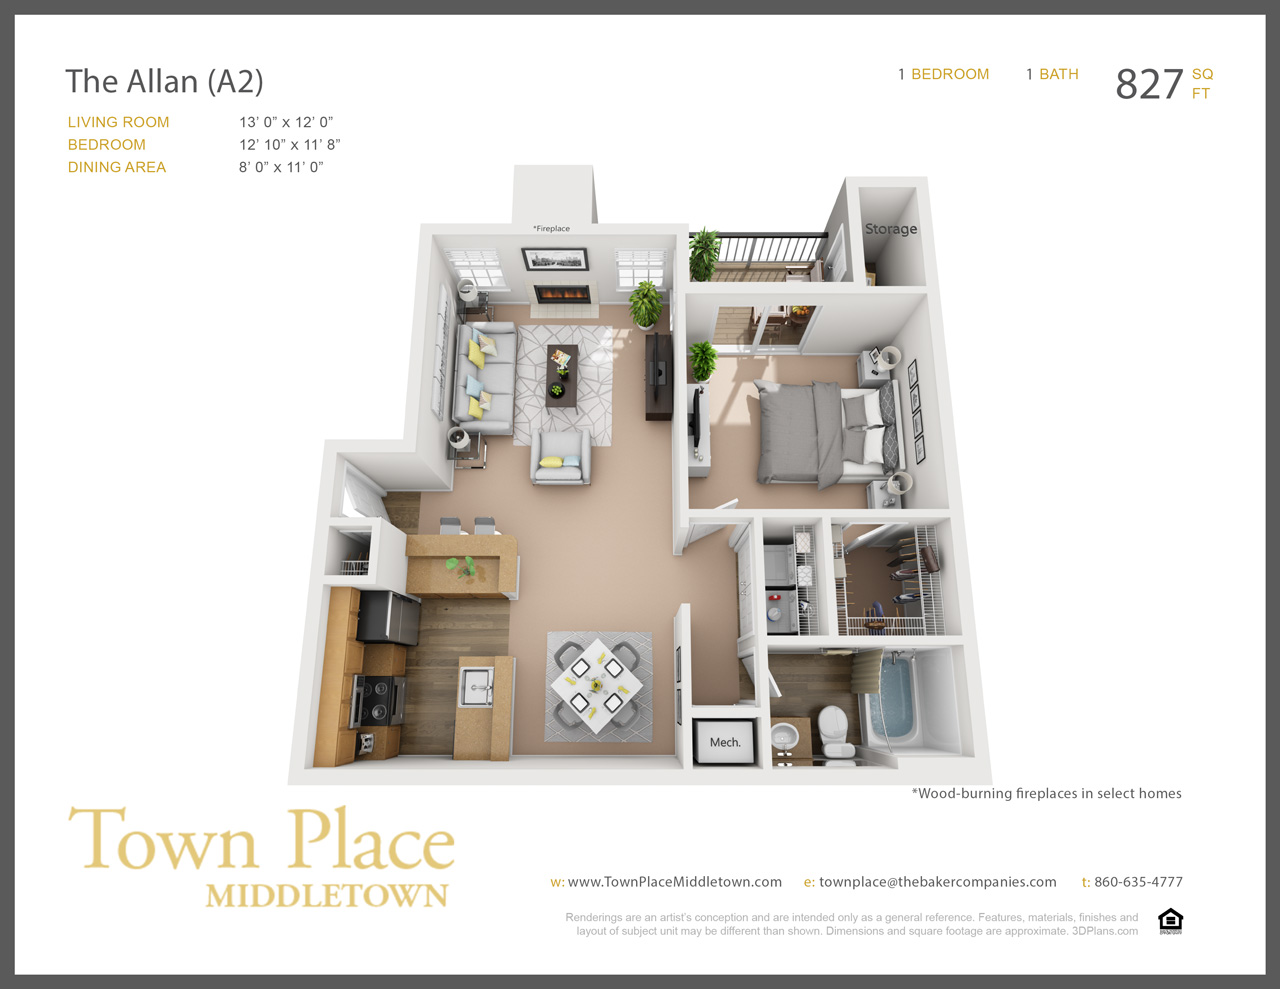 Town-Place-Middletown_The-Allan.jpg